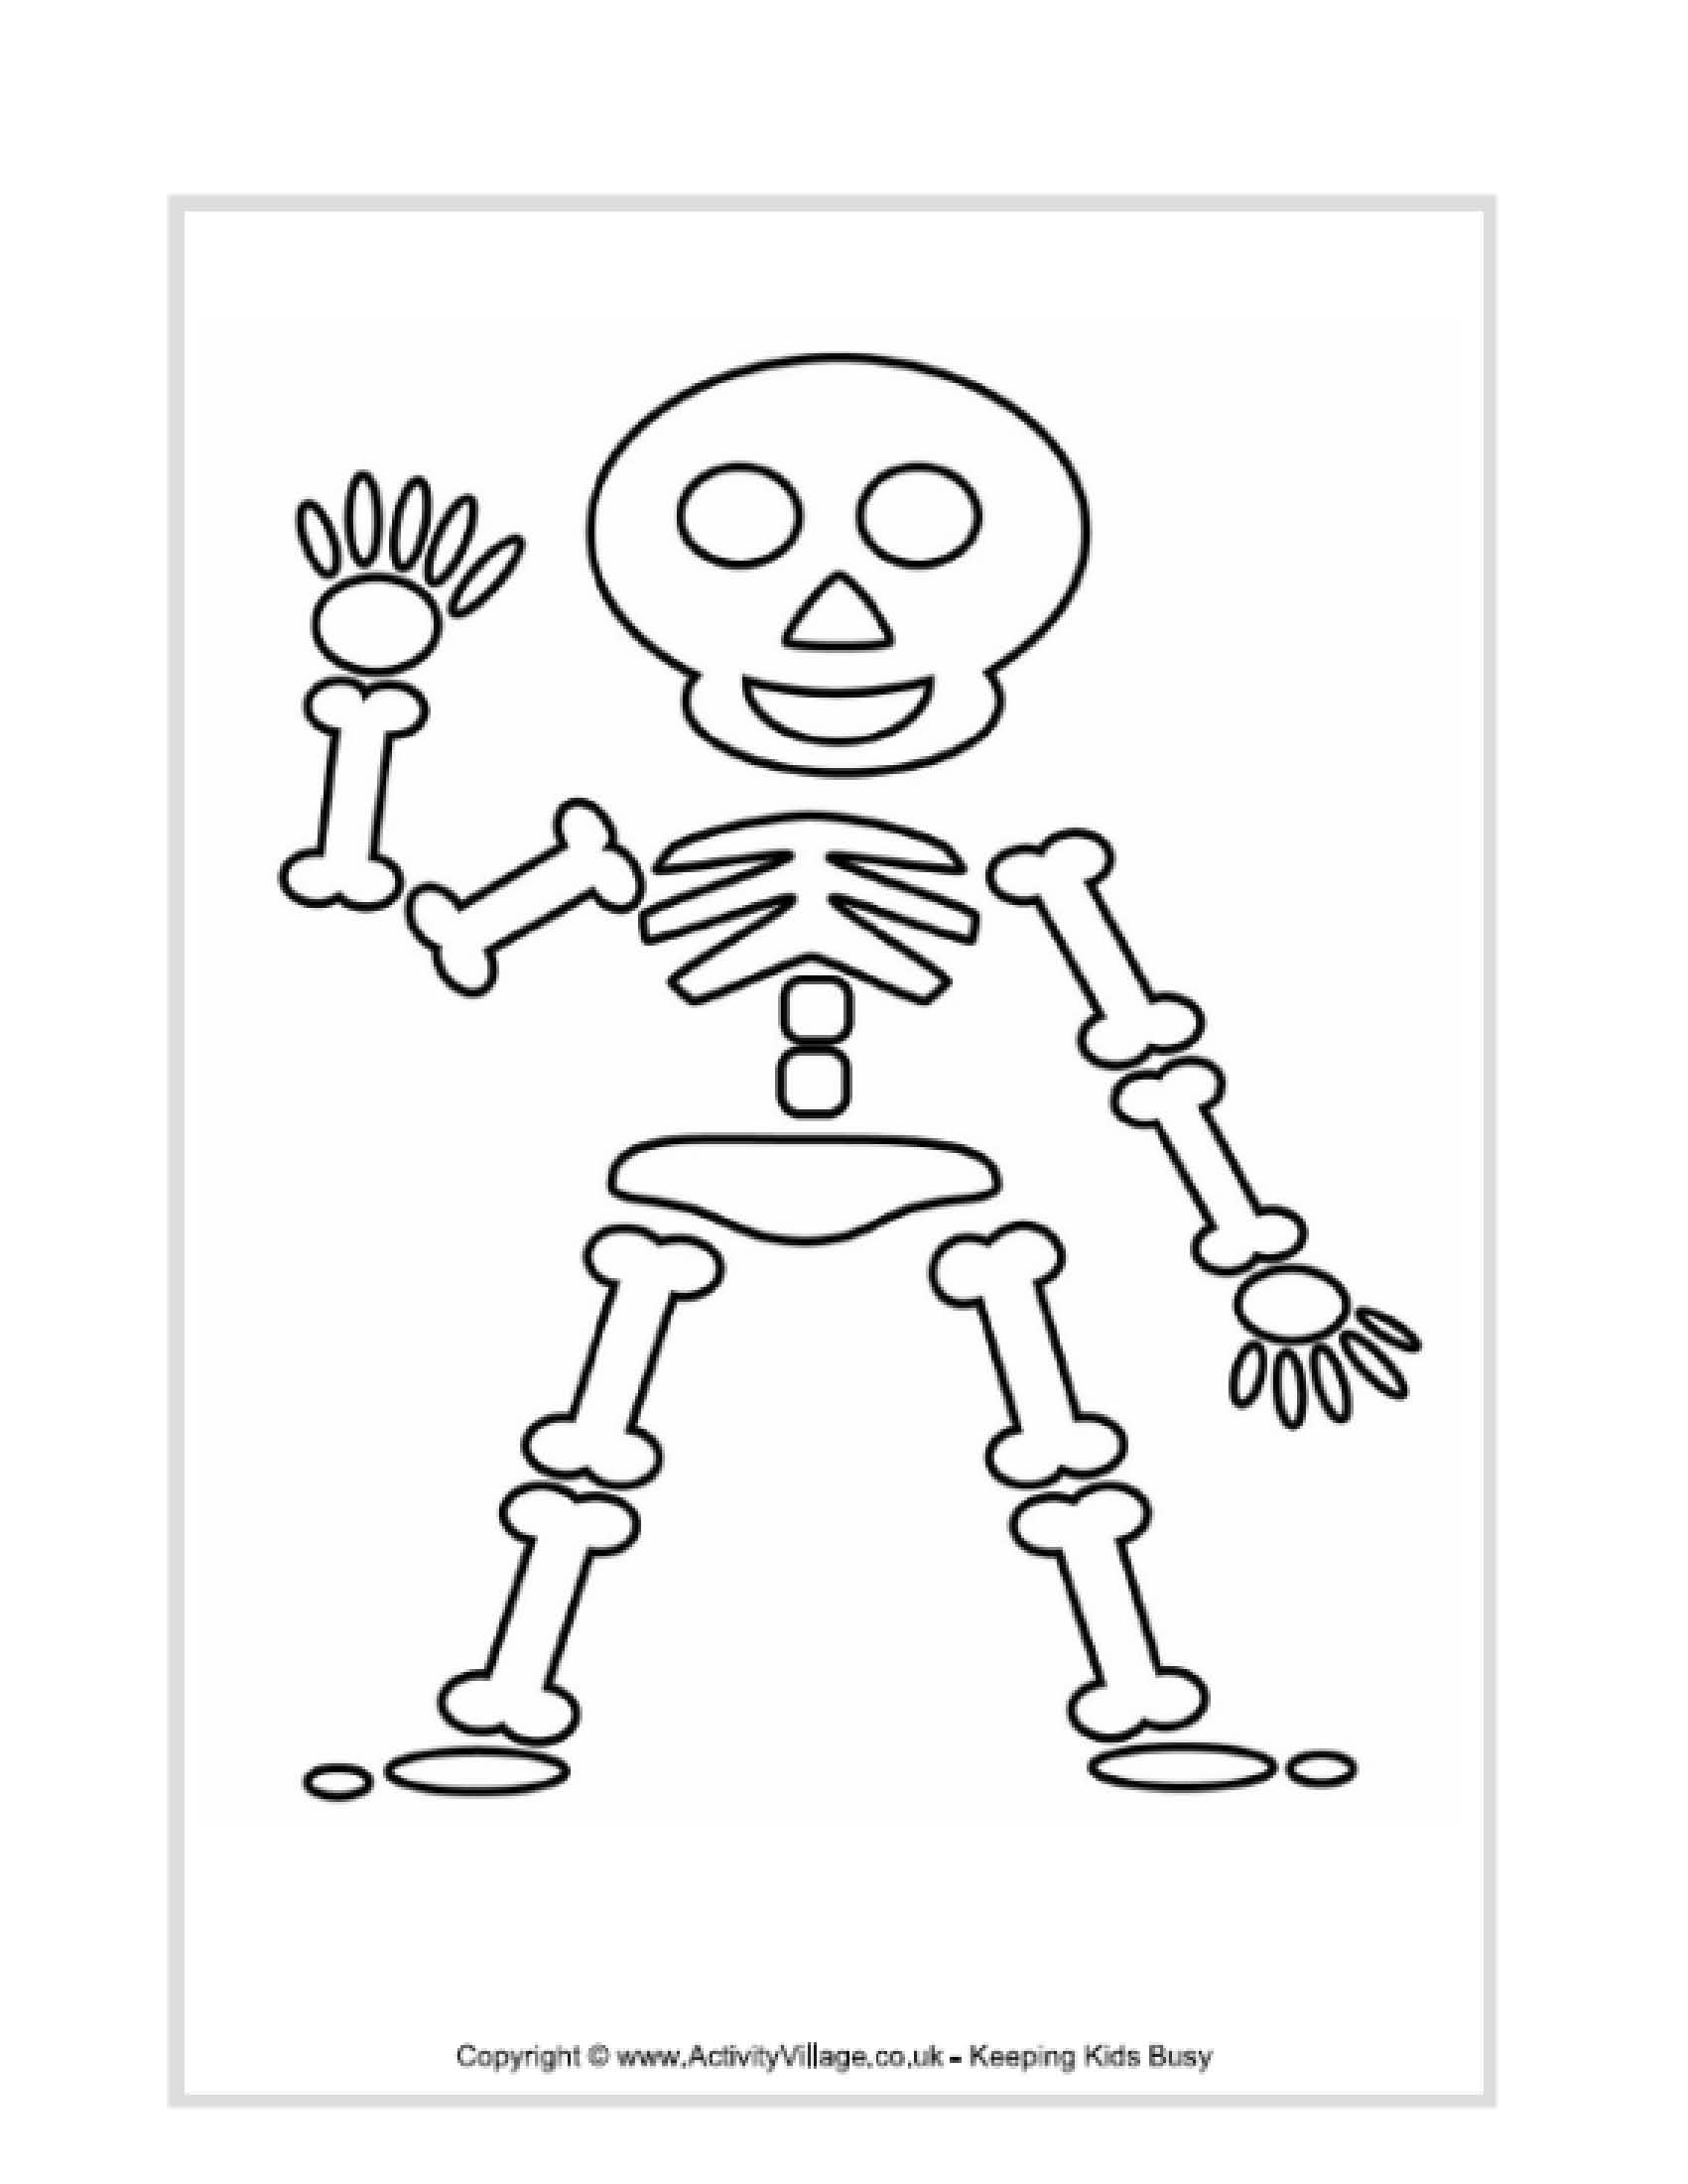 Free Kids Skeleton Drawing Download Free Clip Art Free Clip Art On Clipart Library